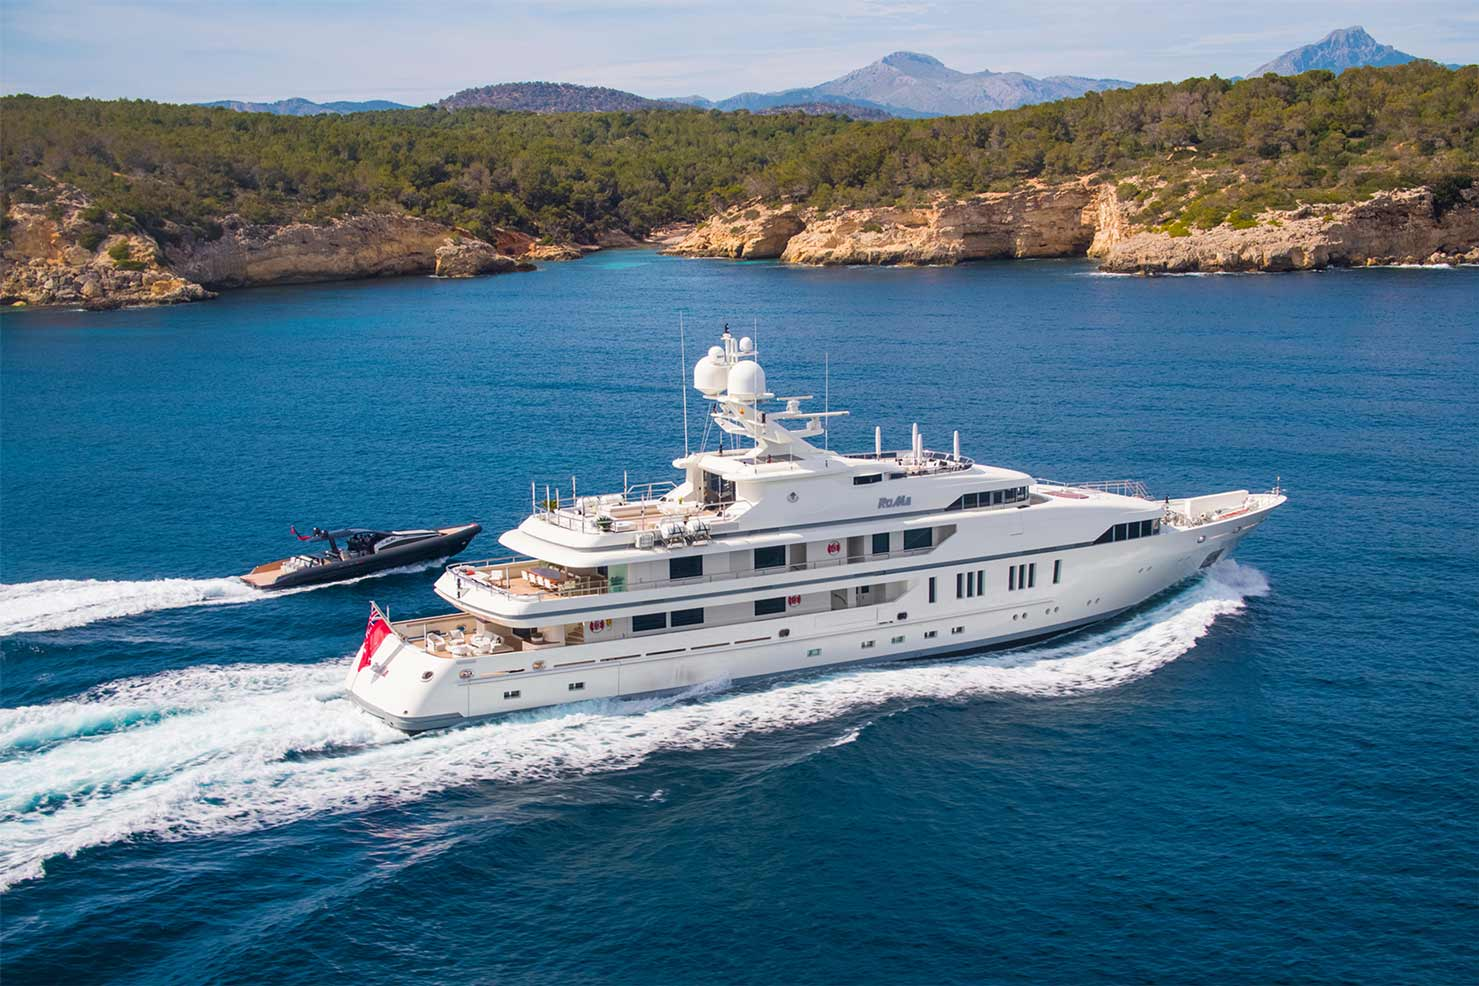 superyacht RoMa cruising the Med with tender during private charter